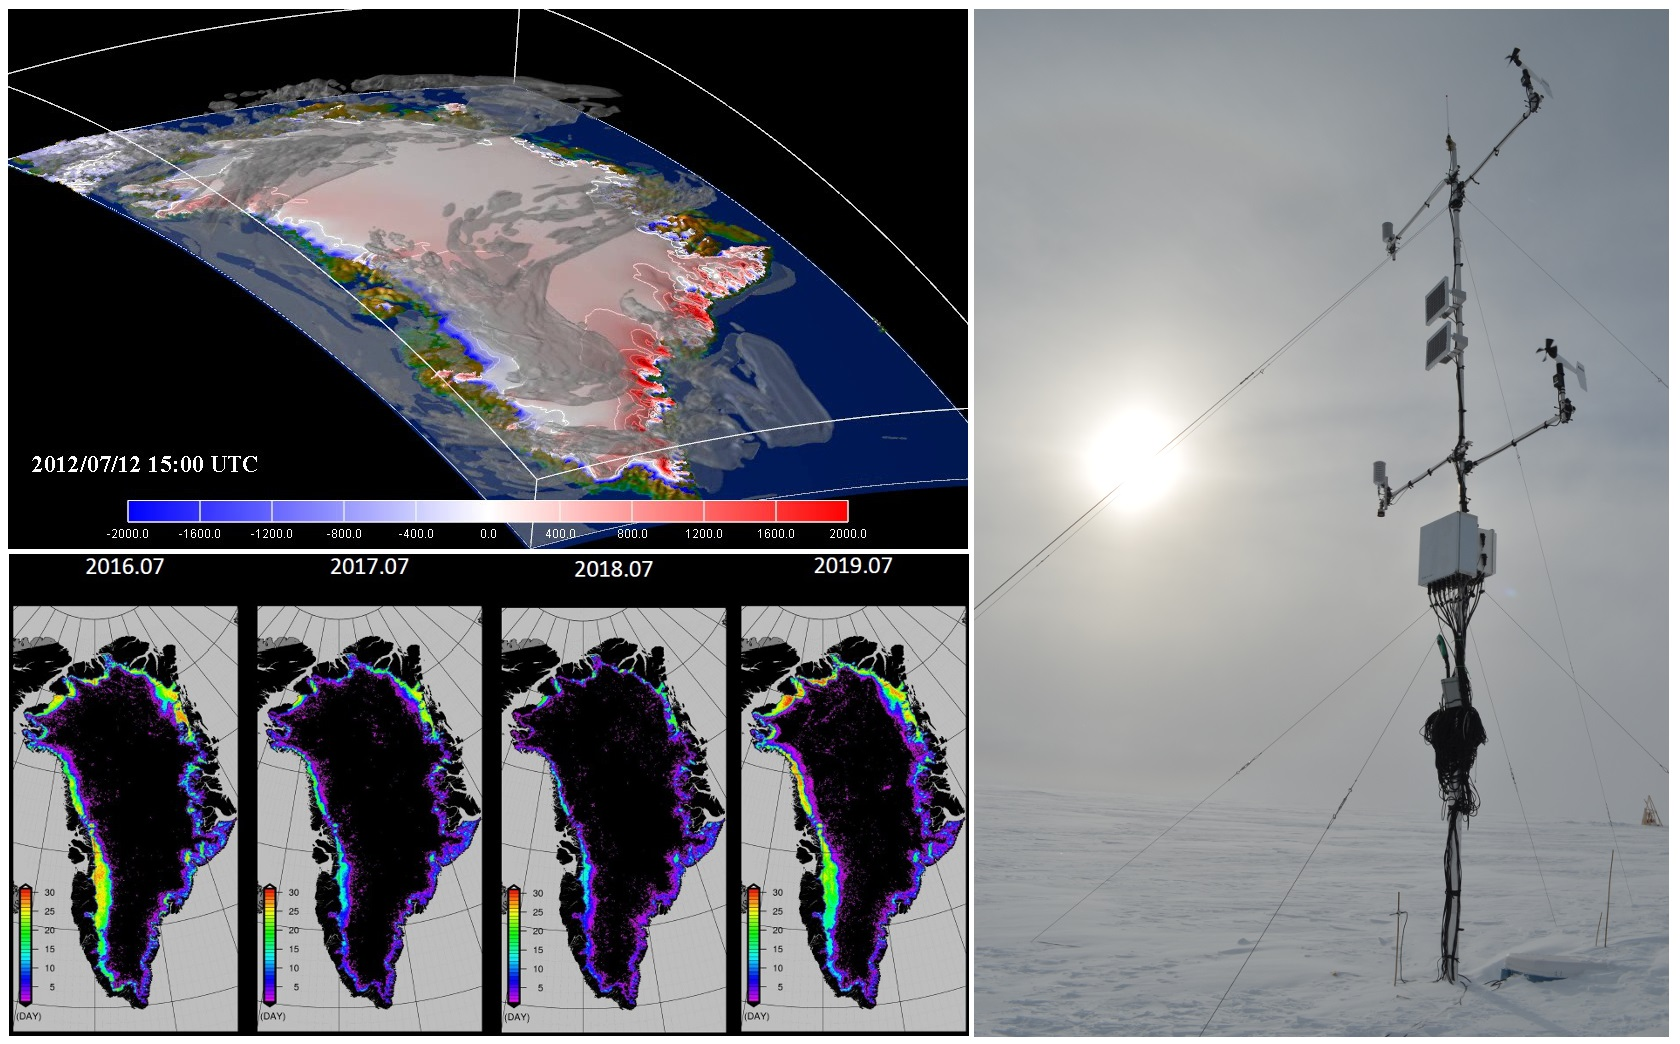 Figure 1: (Top left) Three-dimensional distribution of cloud cover over the Greenland Ice Sheet on July 12, 2012 simulated using the reginal climate model NHM–SMAP. The colored shaded area on the ice sheet surface indicates surface mass balance (mm/day). (Bottom left) Regional distribution of bare ice area on the ice sheet in July retrieved from satellite data (Terra/MODIS). (Right) Automatic weather station at the SIGMA-A site on the northwest Greenland Ice Sheet.